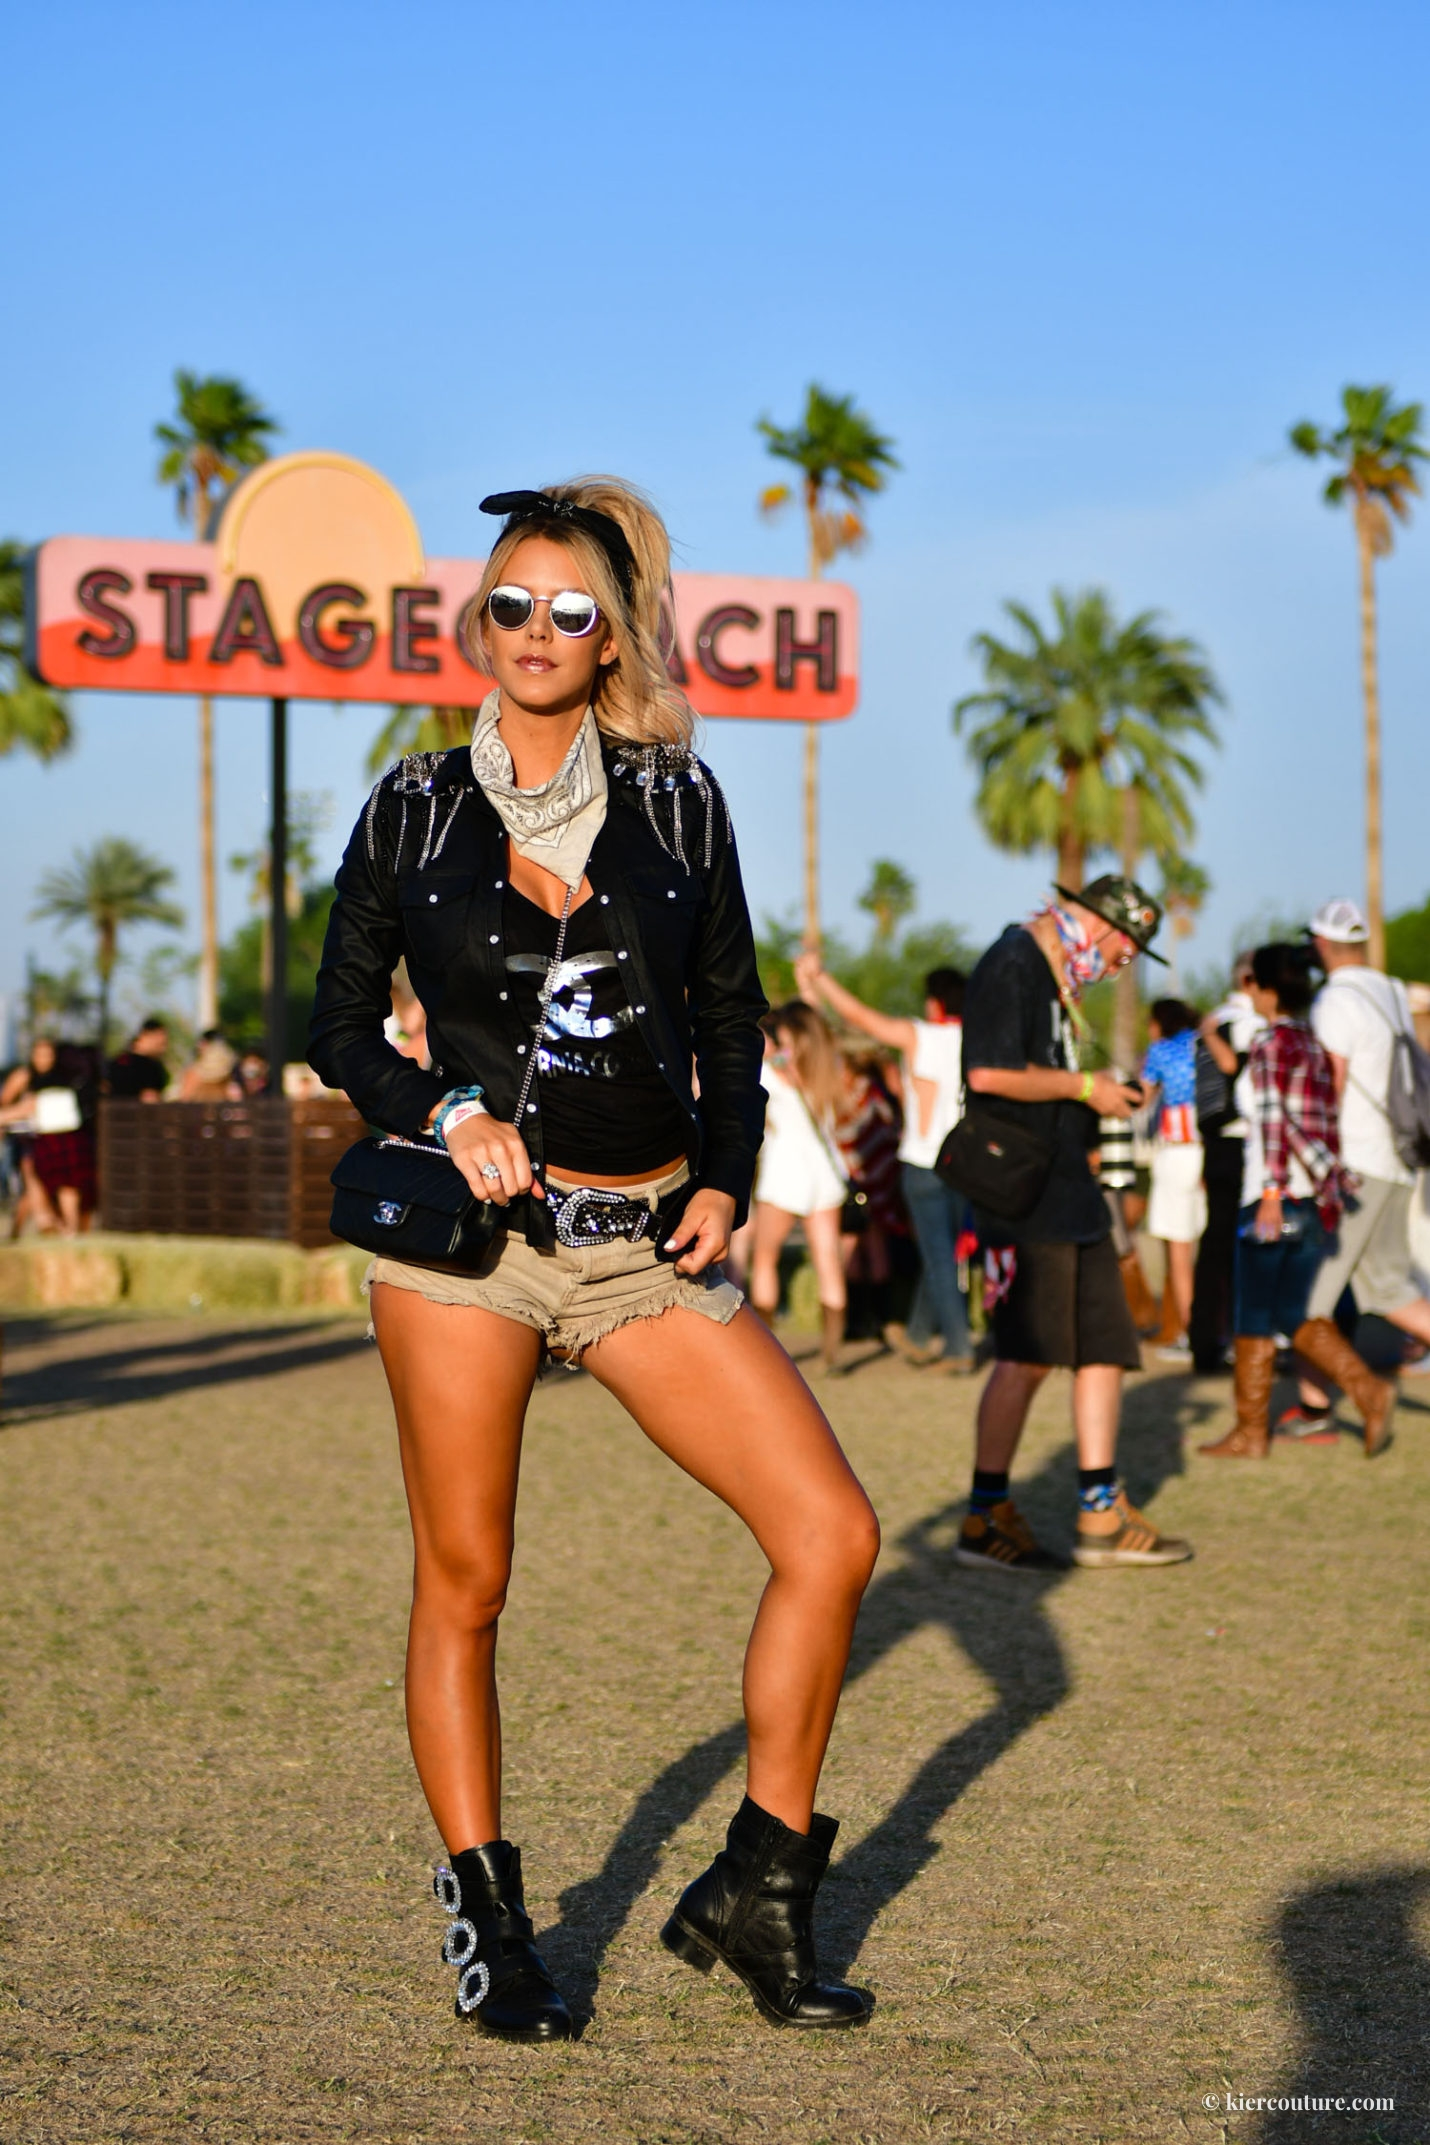 stagecoach fashion